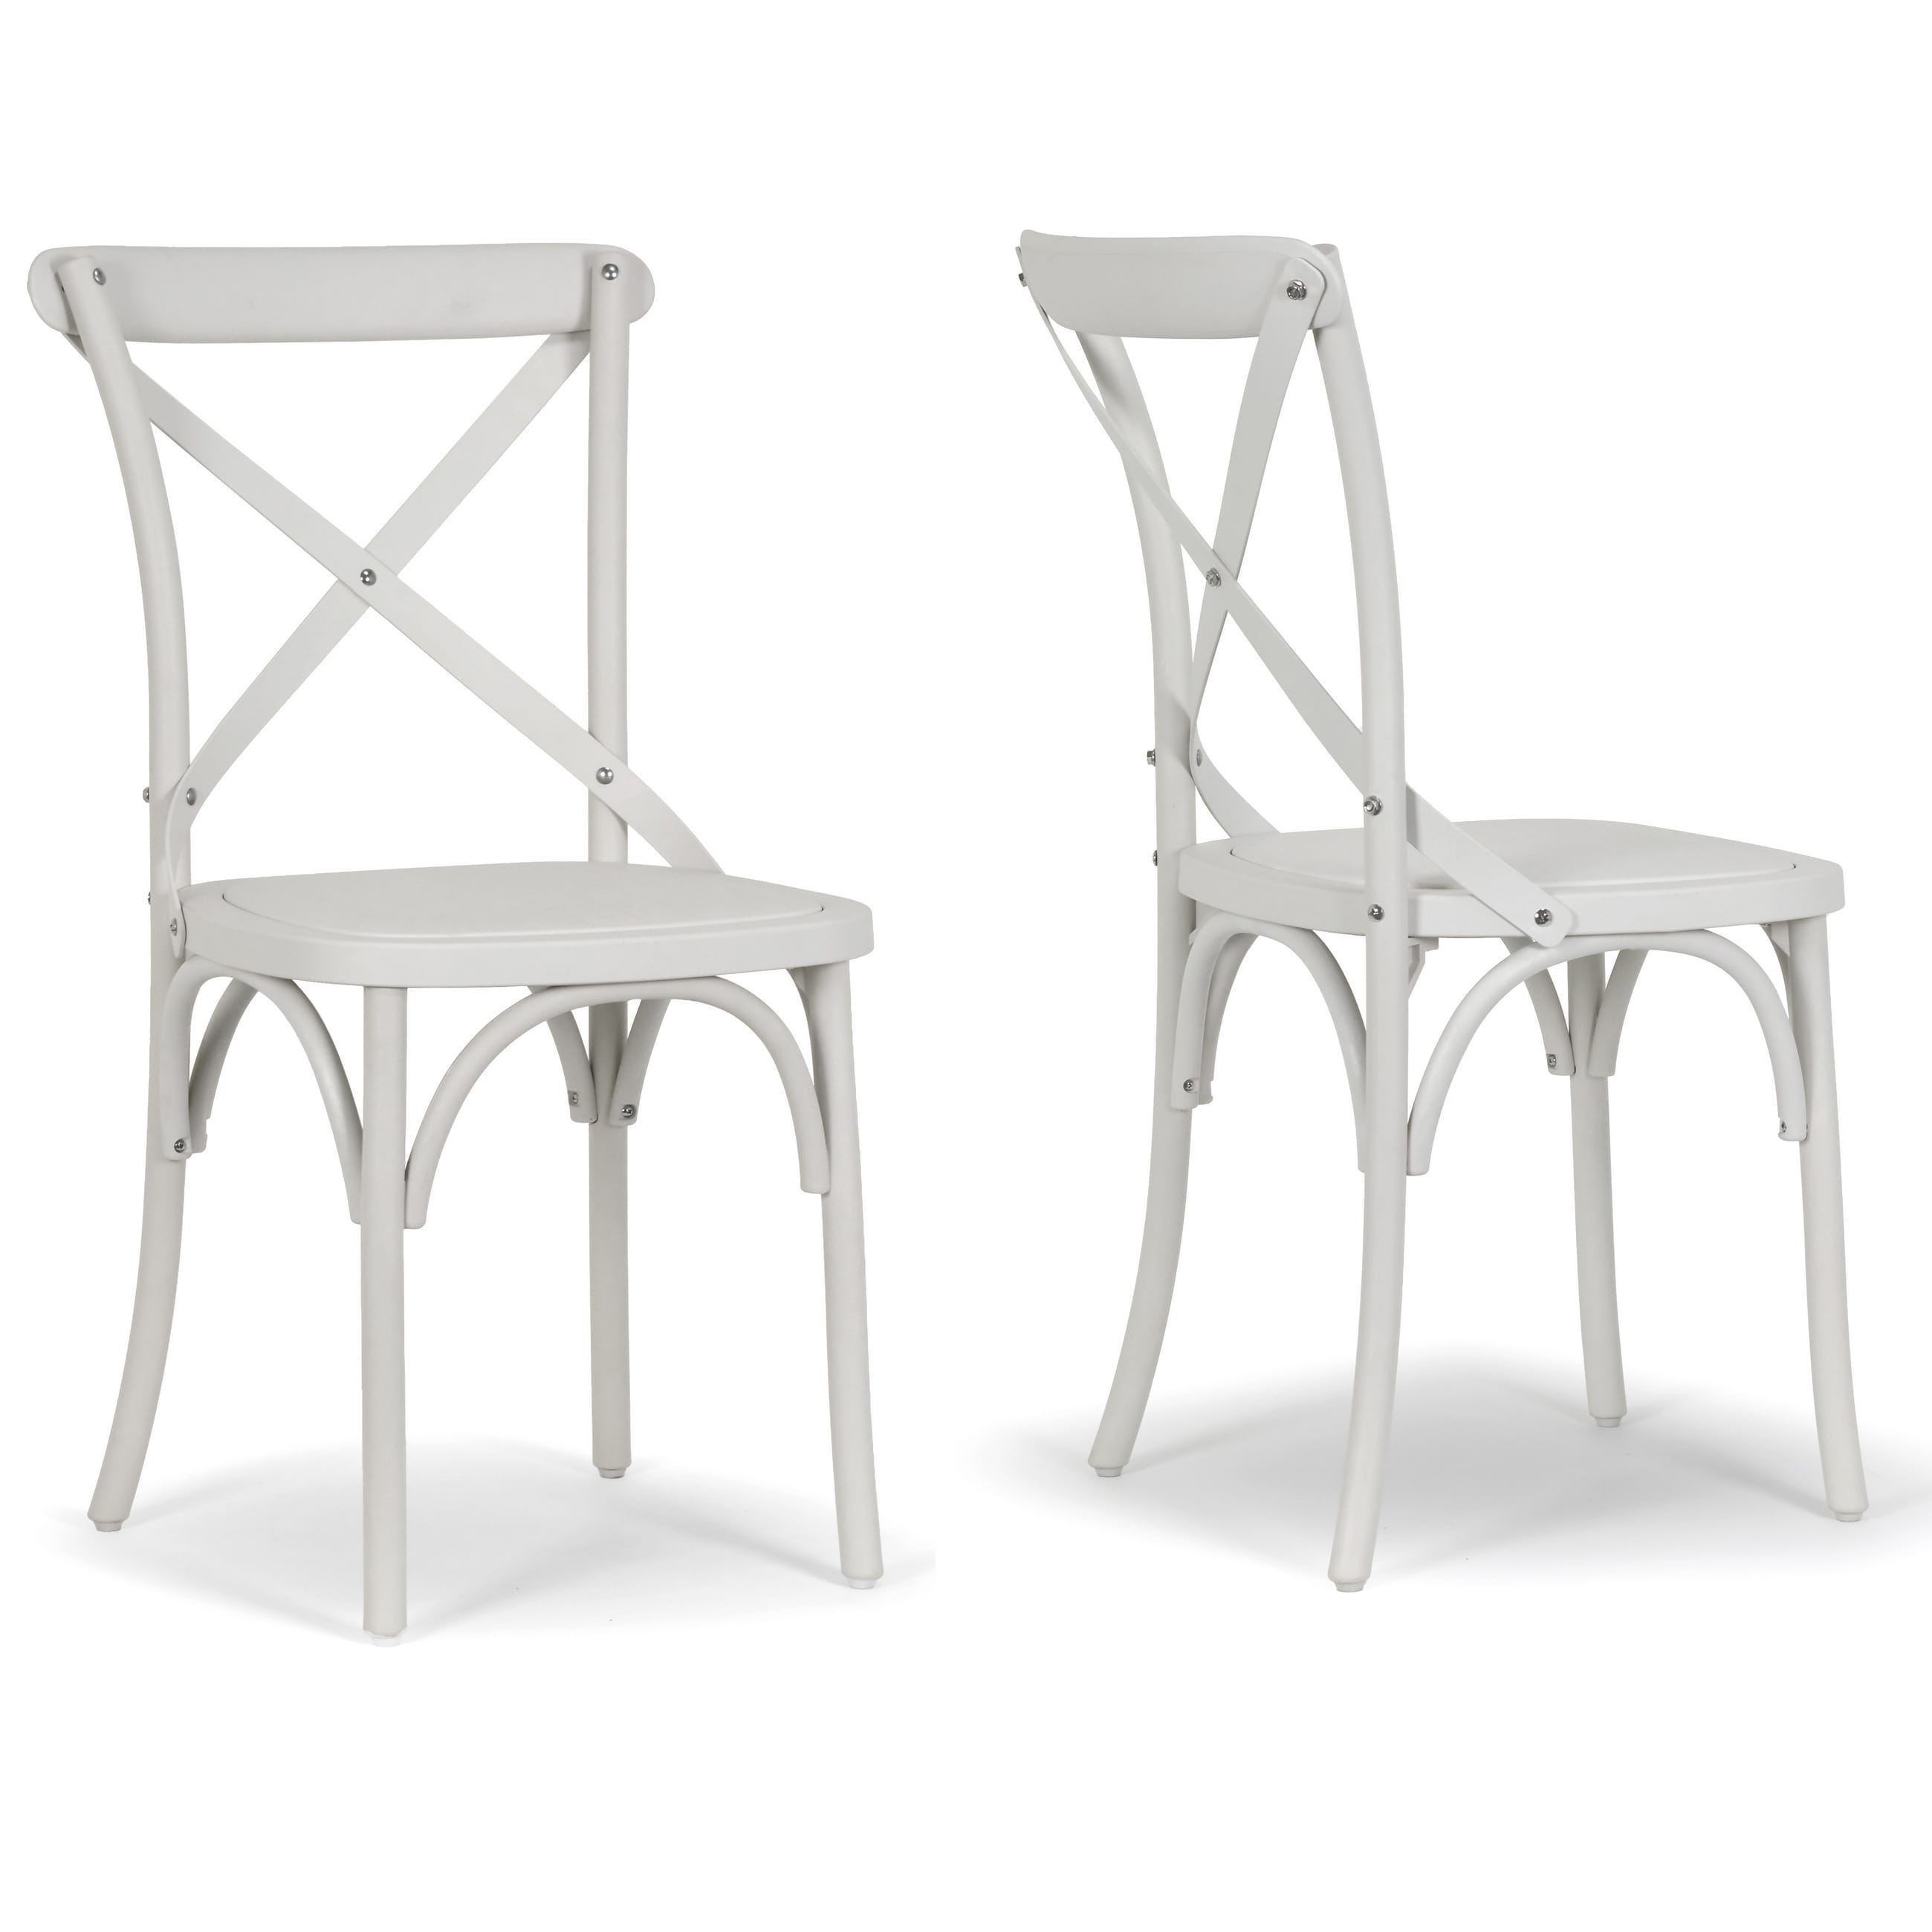 Aleah Outdoorindoor Cross Back Dining Chair (Set Of 2)